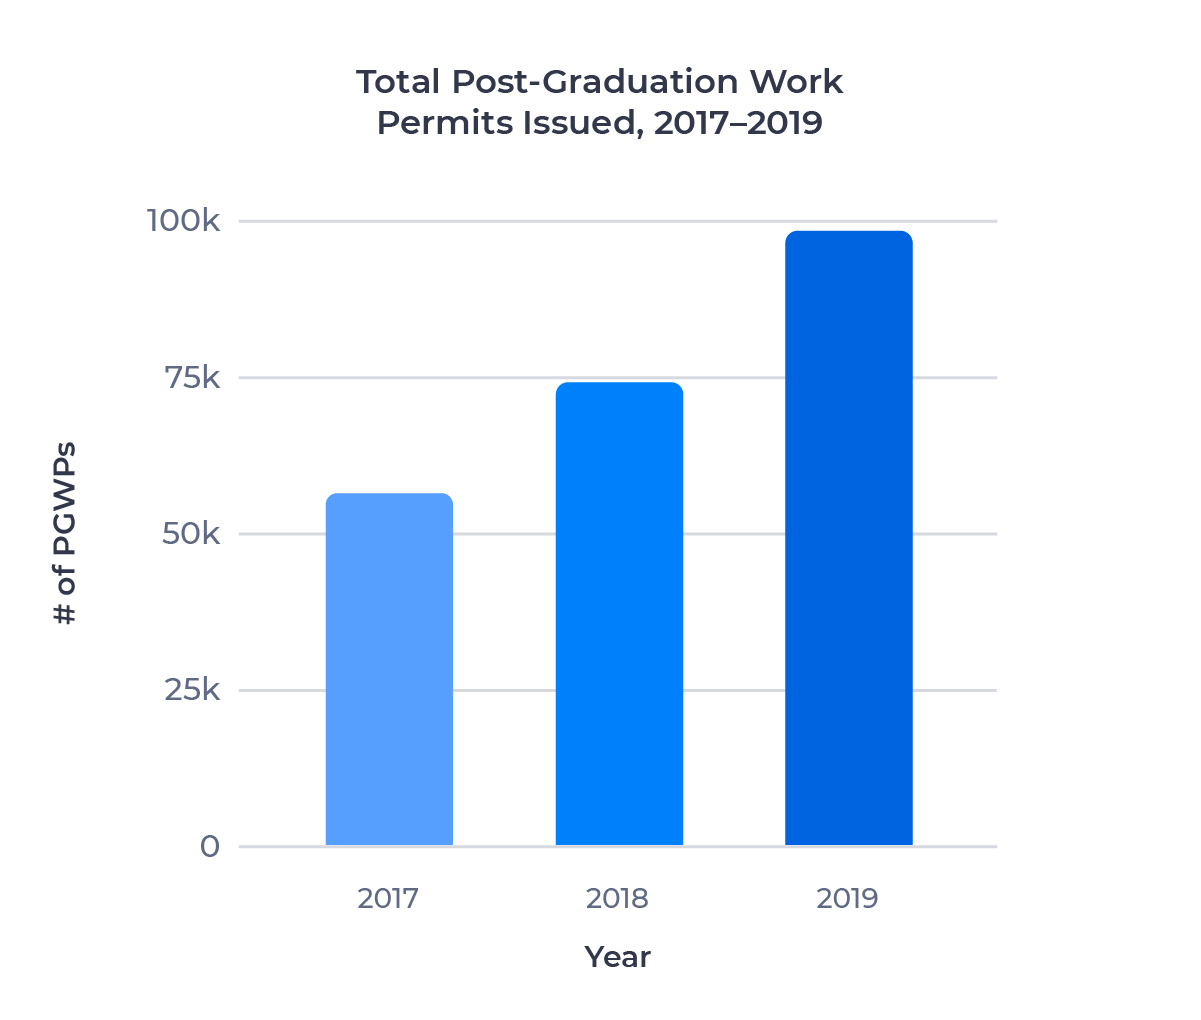 Bar chart showing the number of post-graduation work permits issued between 2017 and 2019. Examined in detail below.